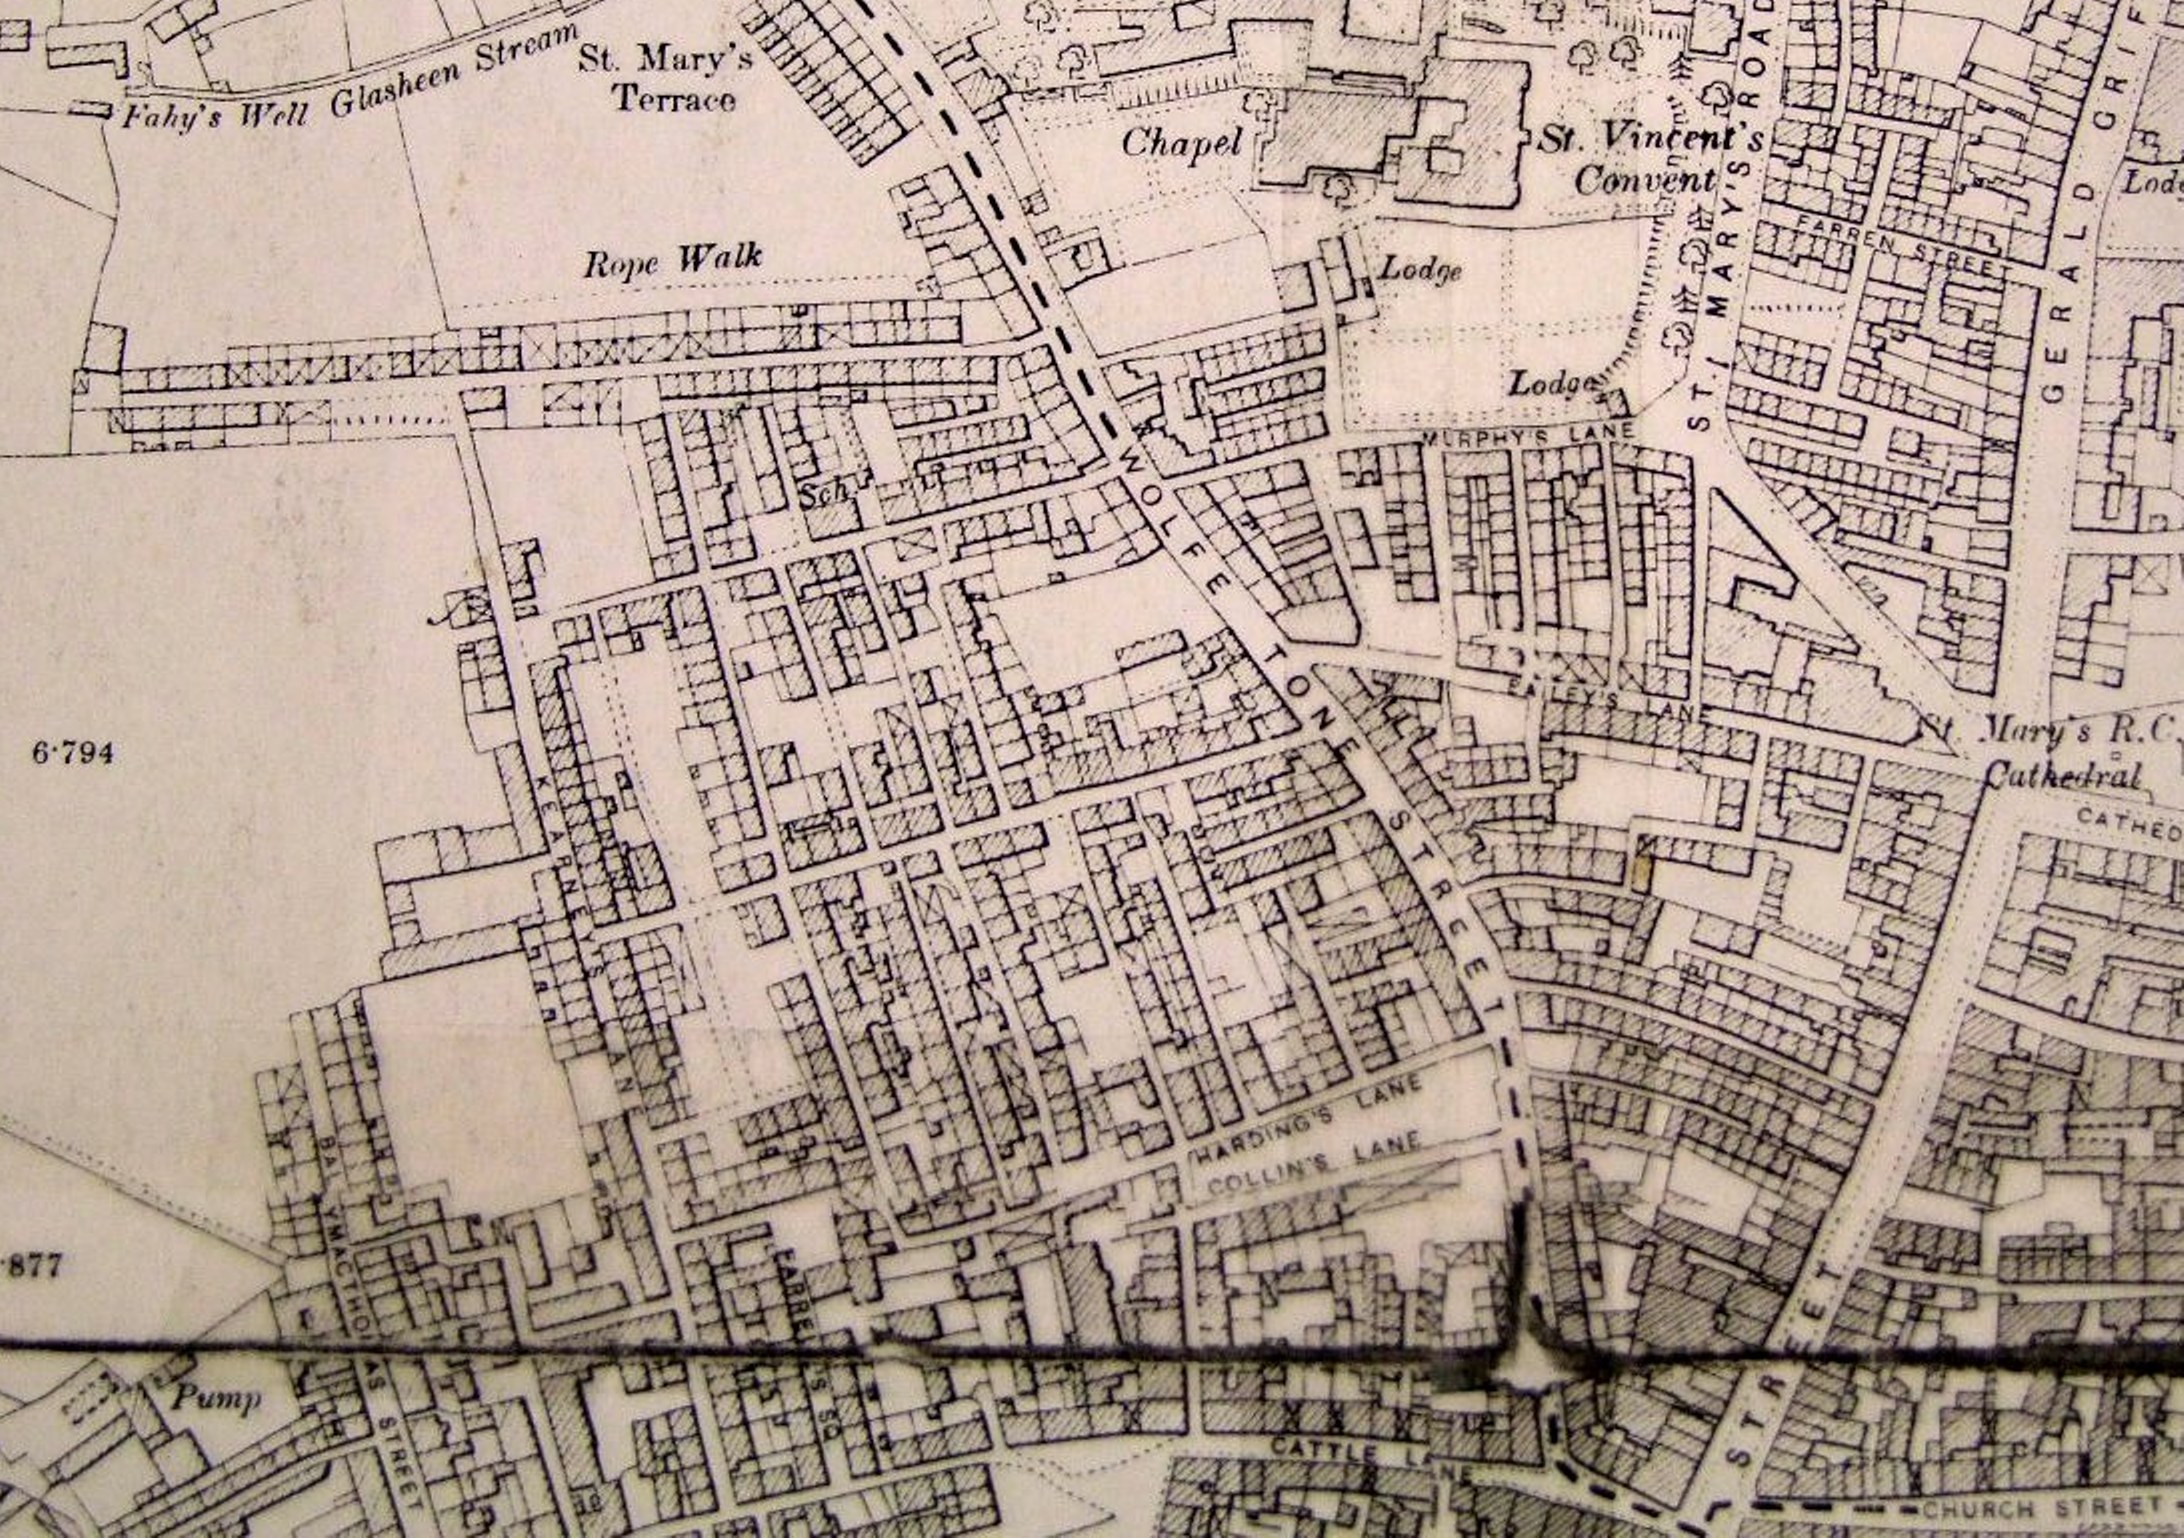 603b. Map of tenements to the north-west of Shandon, c.1900